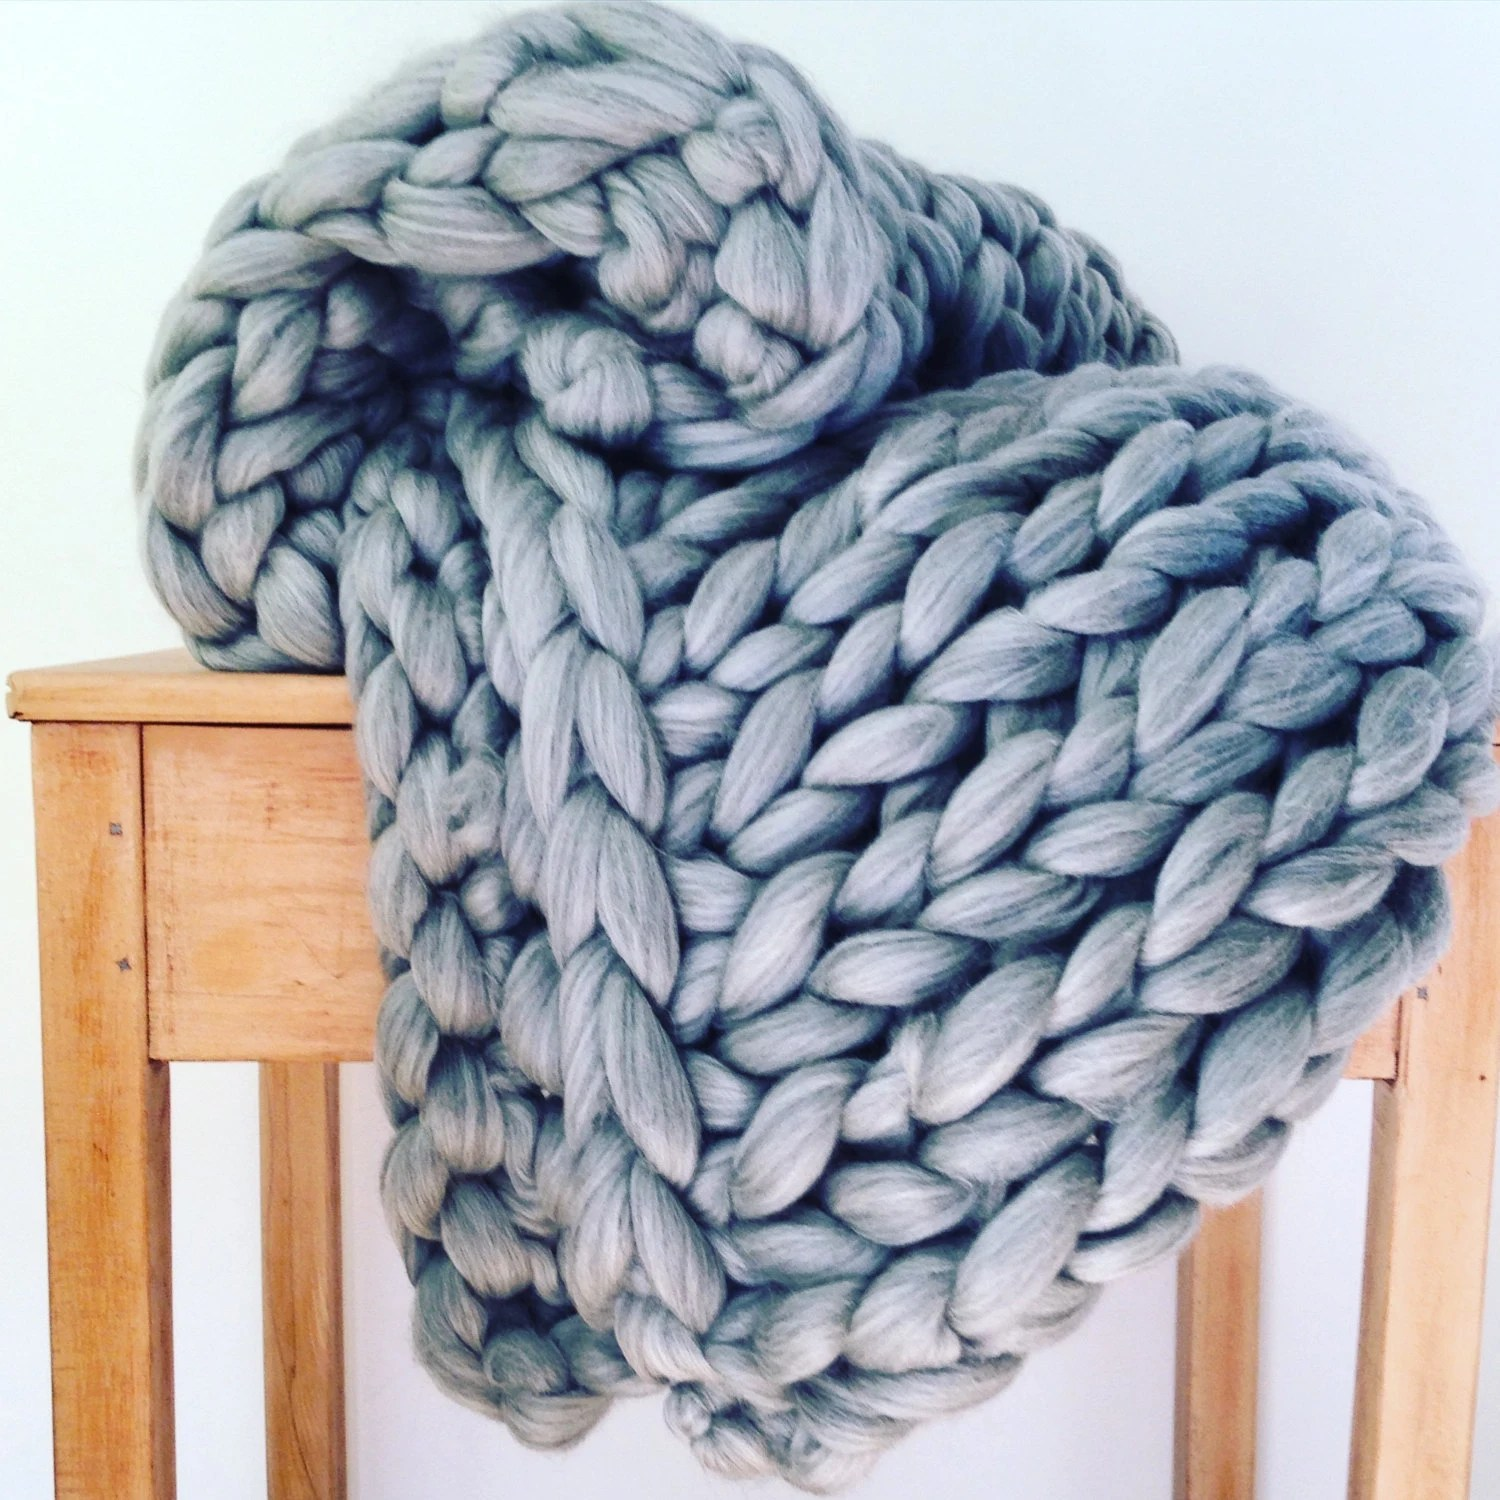 Woll Decke Giant Knitted Blanket. Chunky Knit Throw. Pure Wool Giant